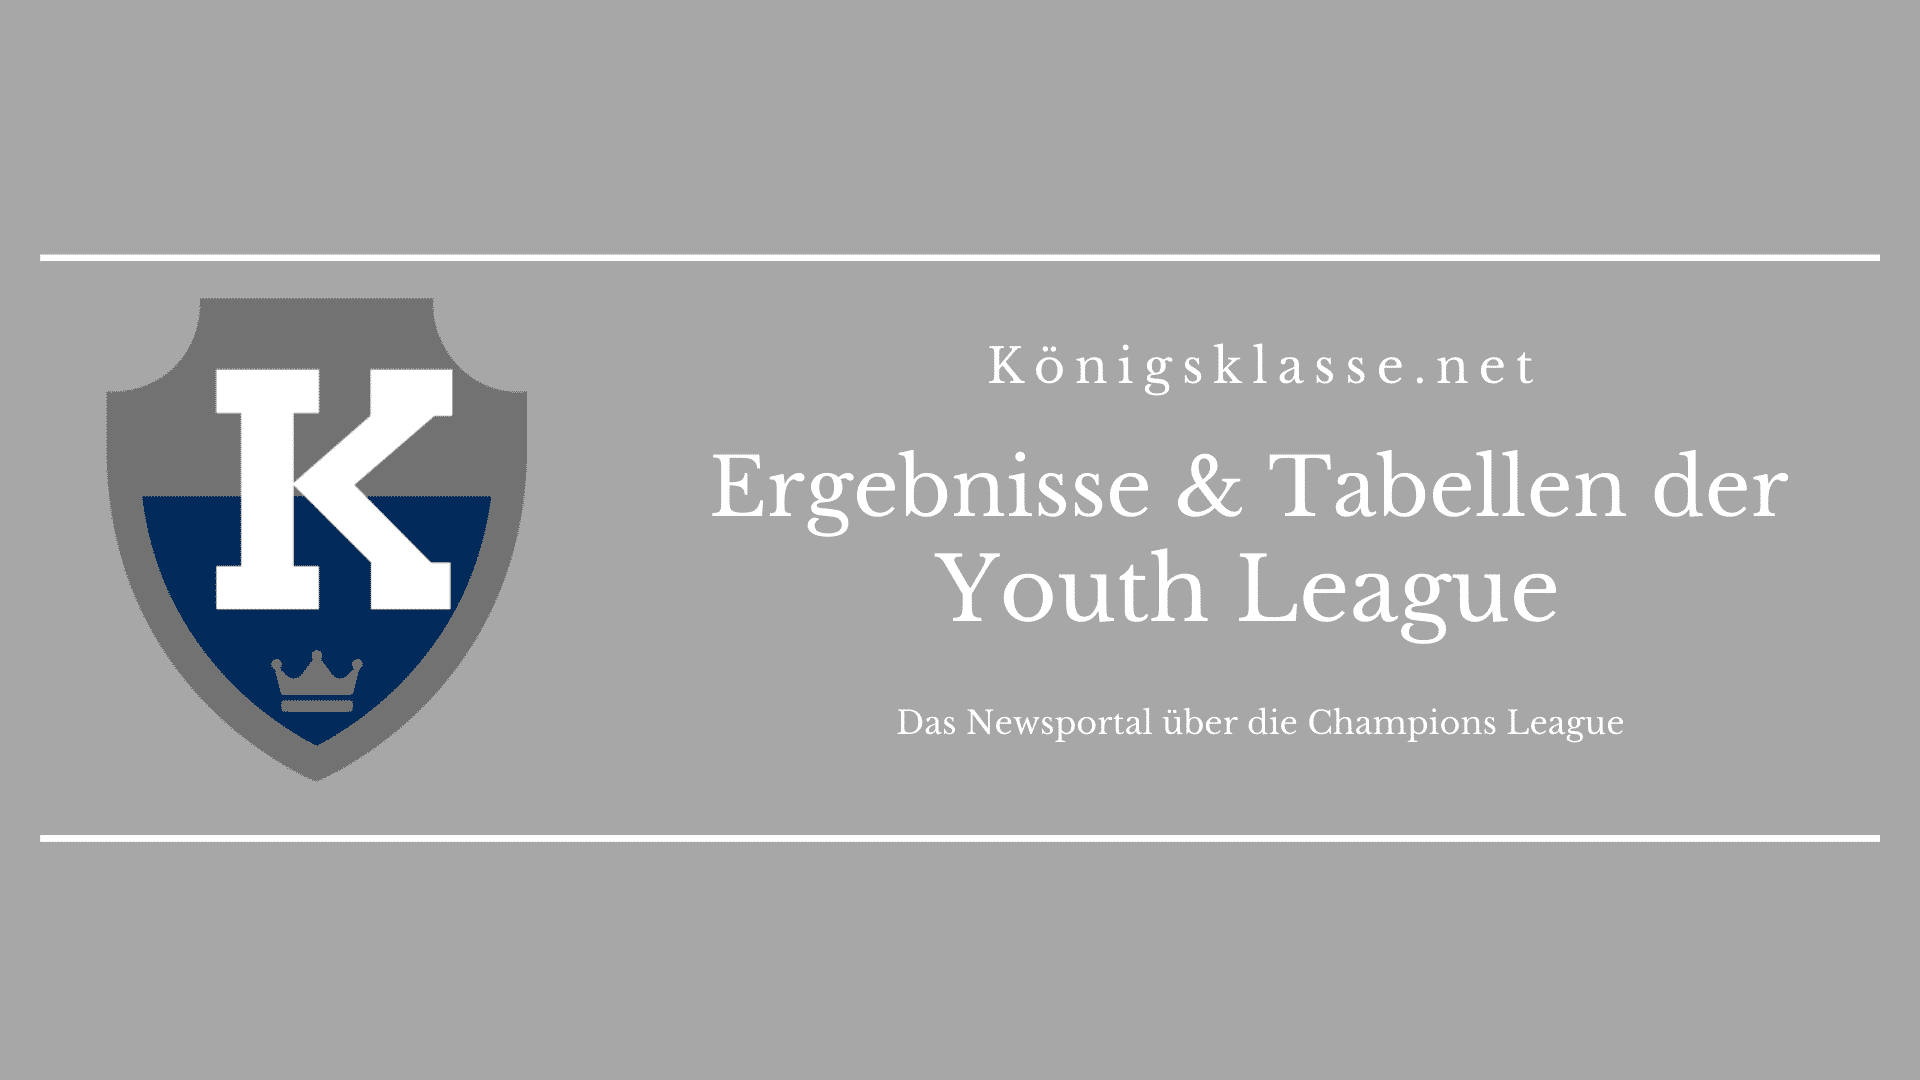 Youth League Ergebnisse